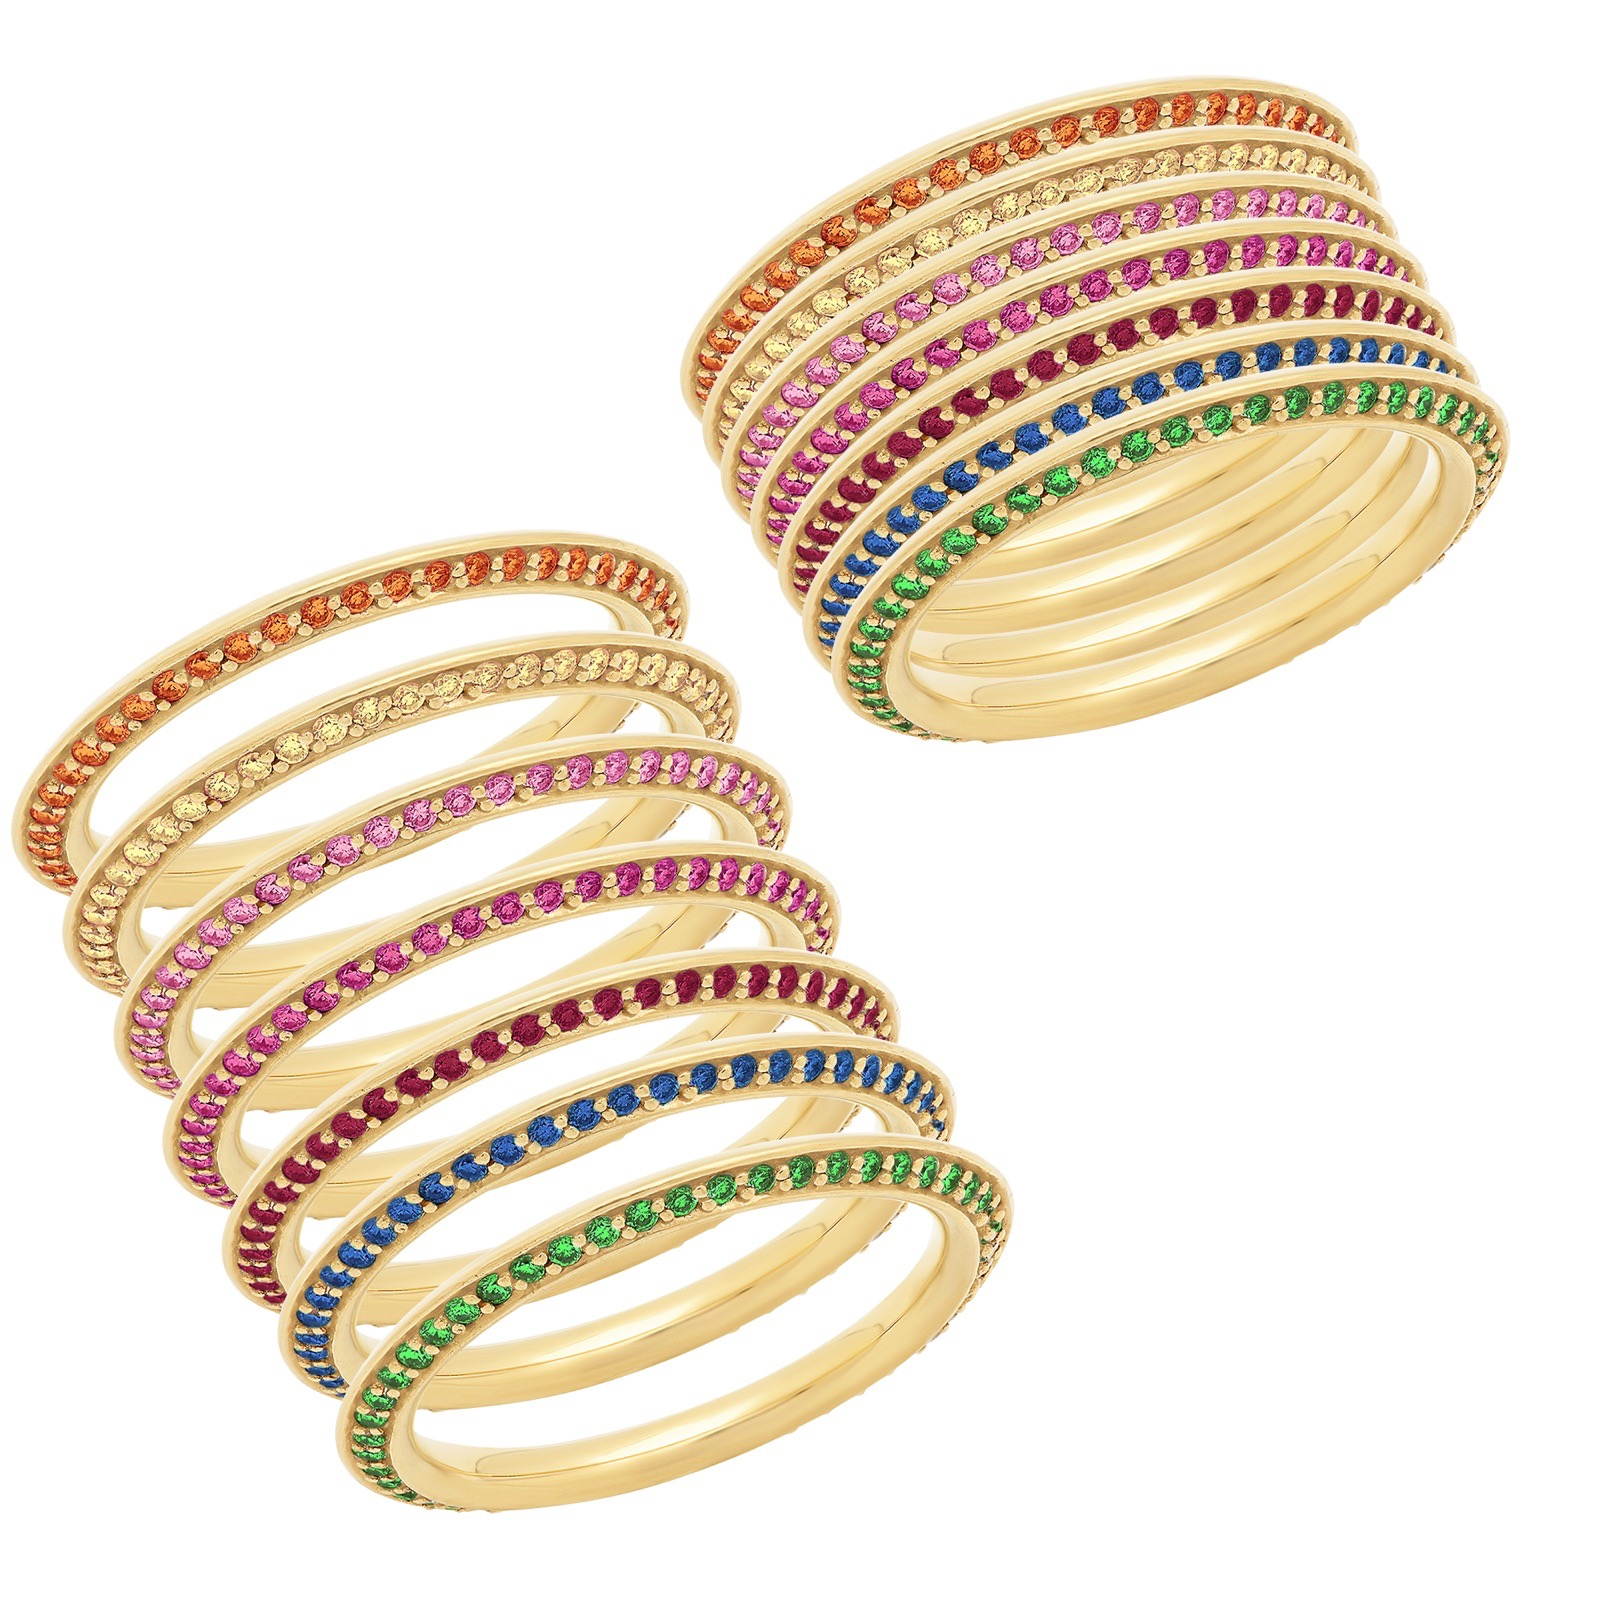 ORBIT RINGS - COLORS.jpg